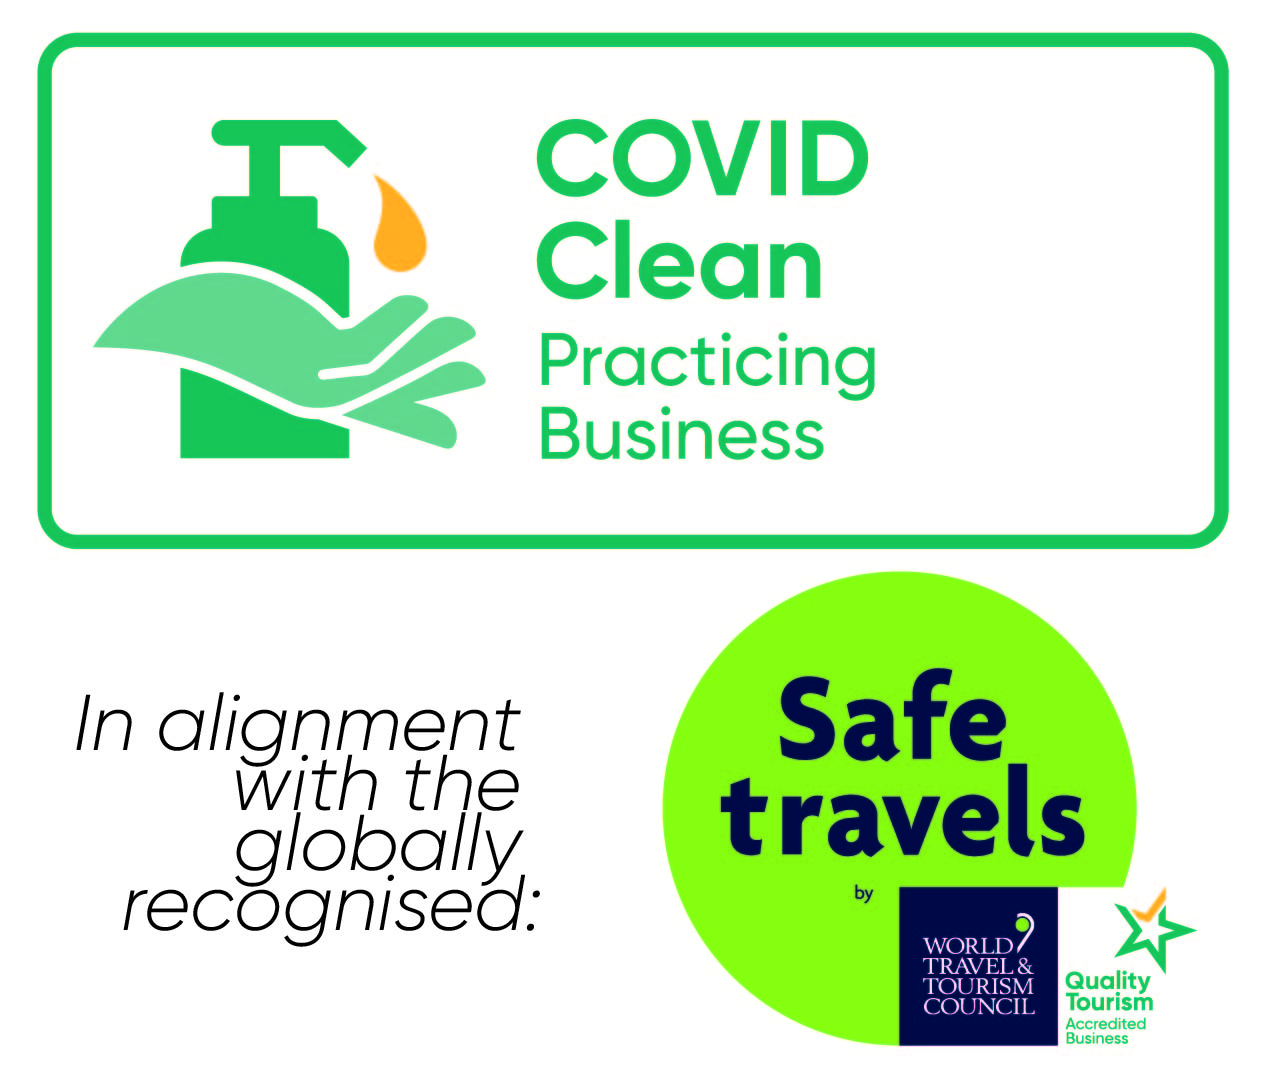 Covid Clean Practising Business in alignment with globally recognised Safe Travels